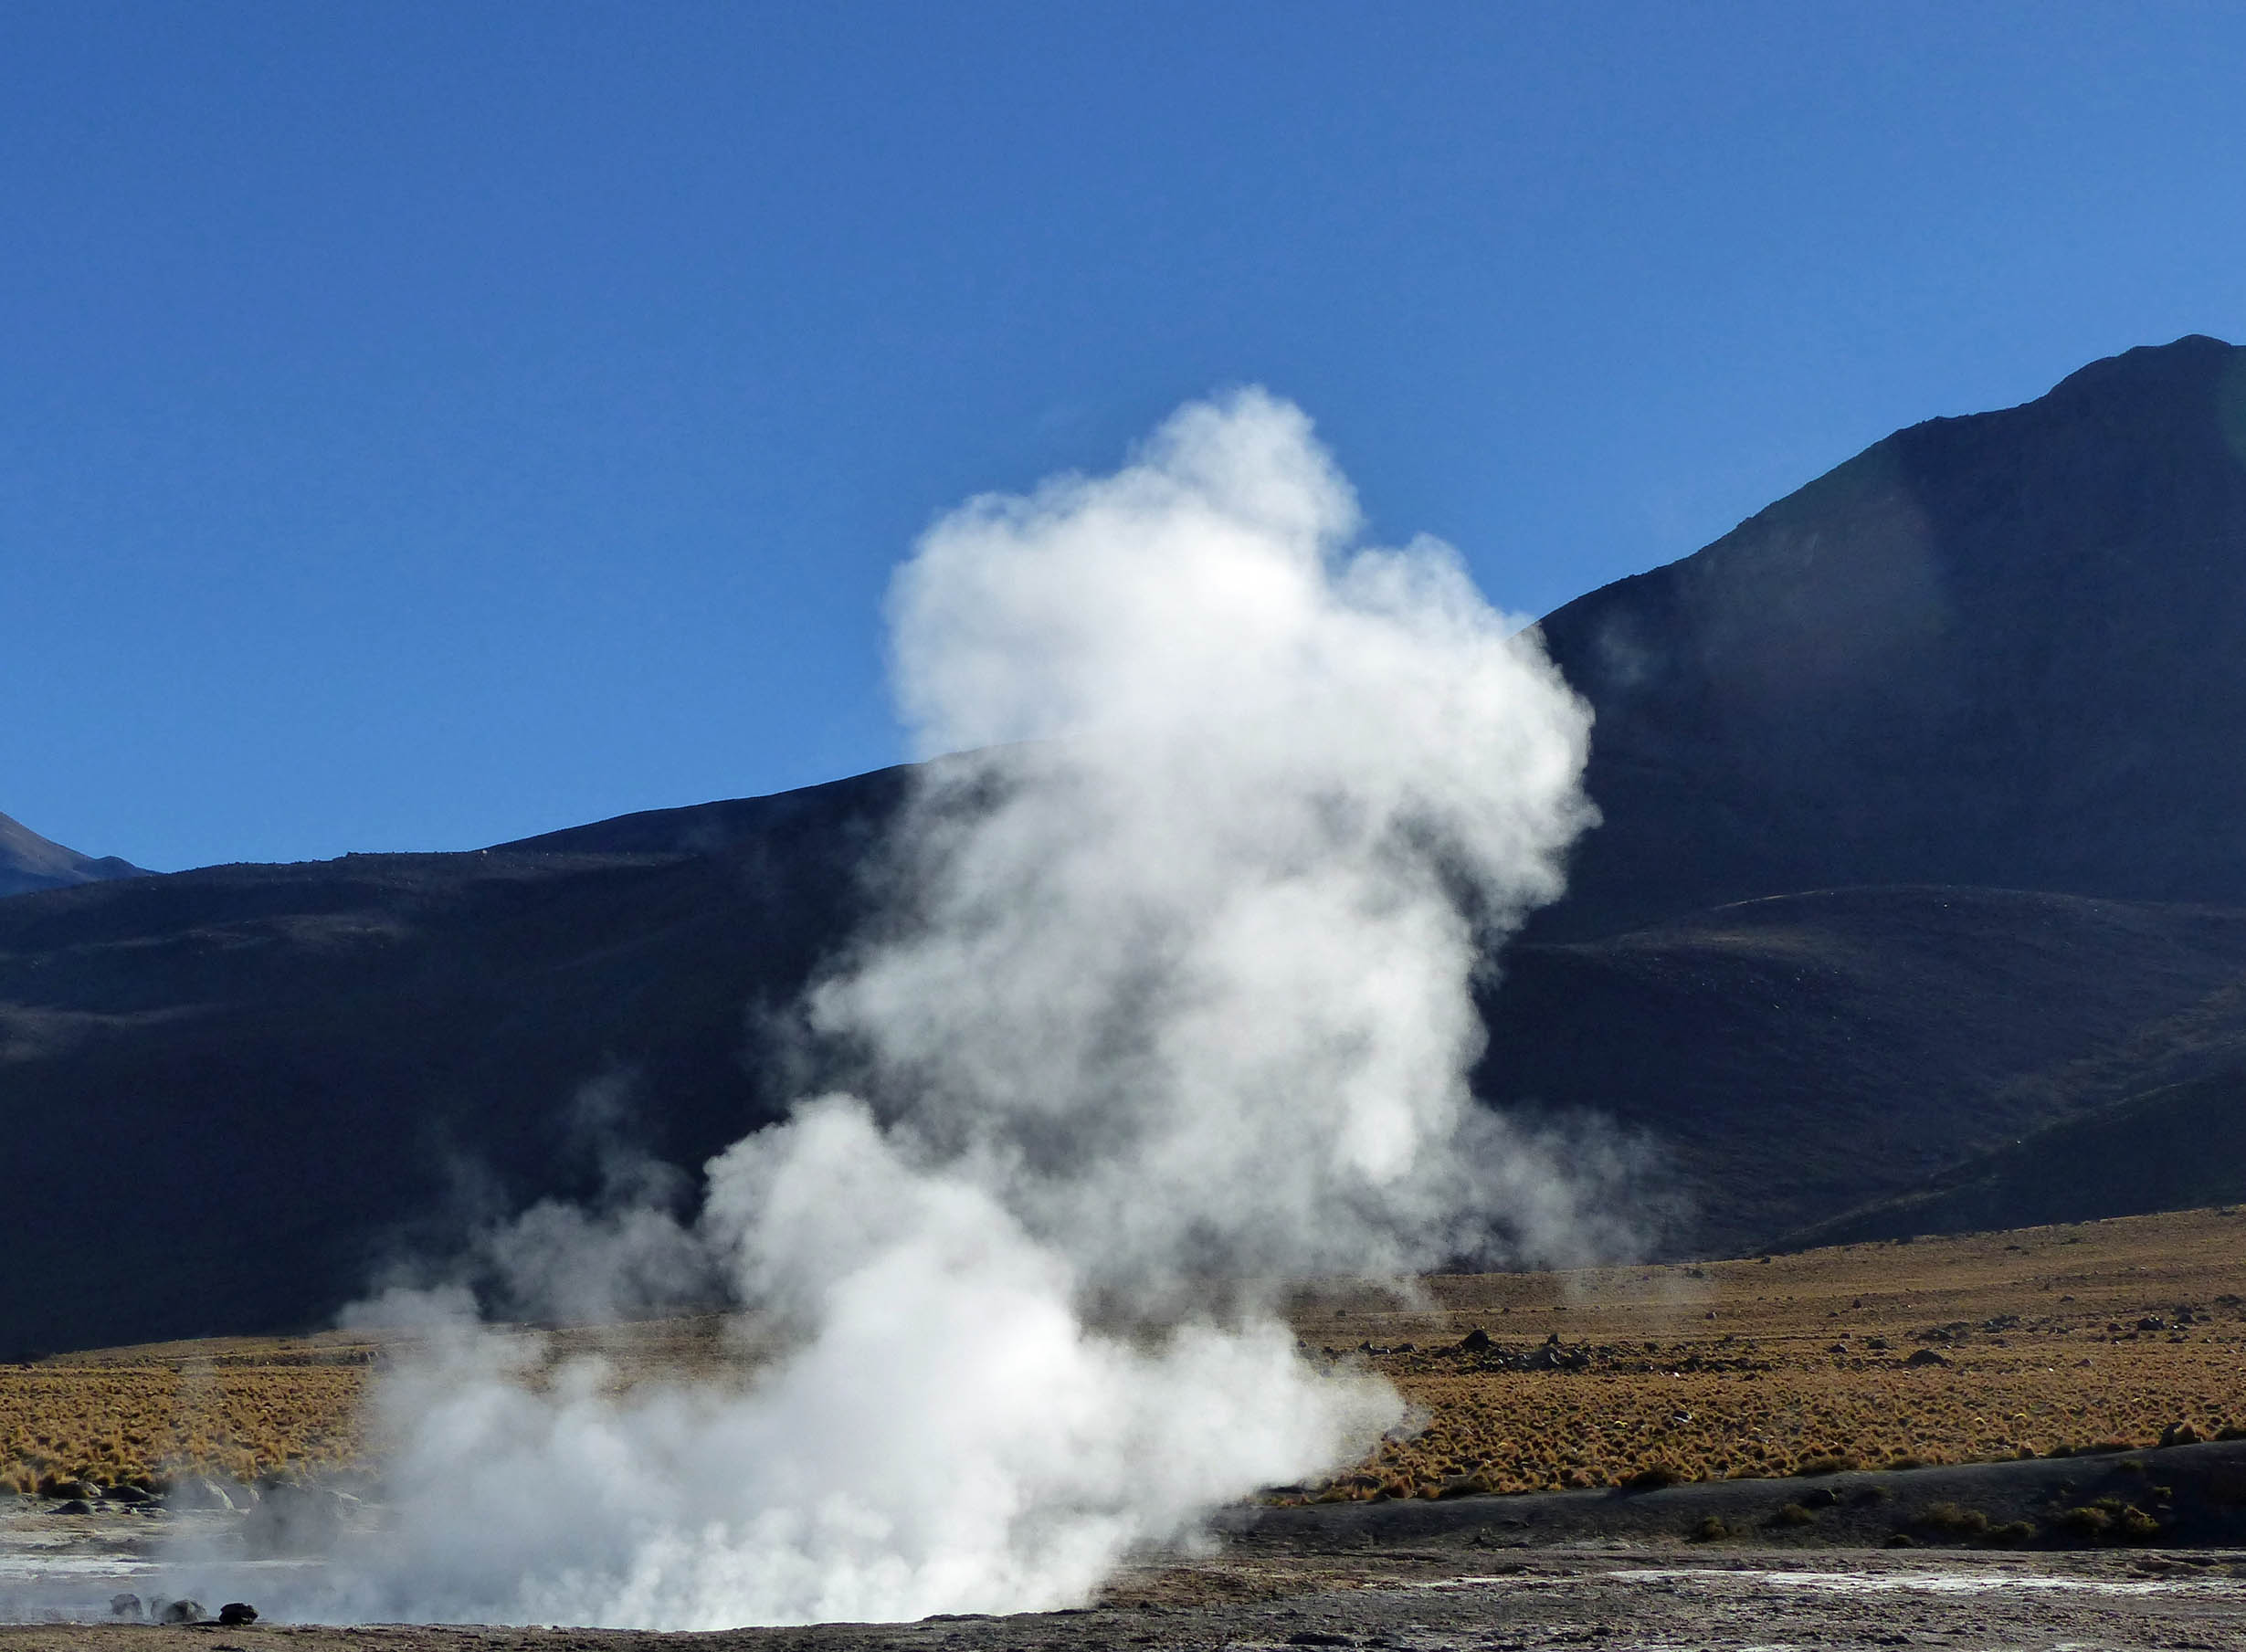 Steam rising from a geyser with mountain backdrop